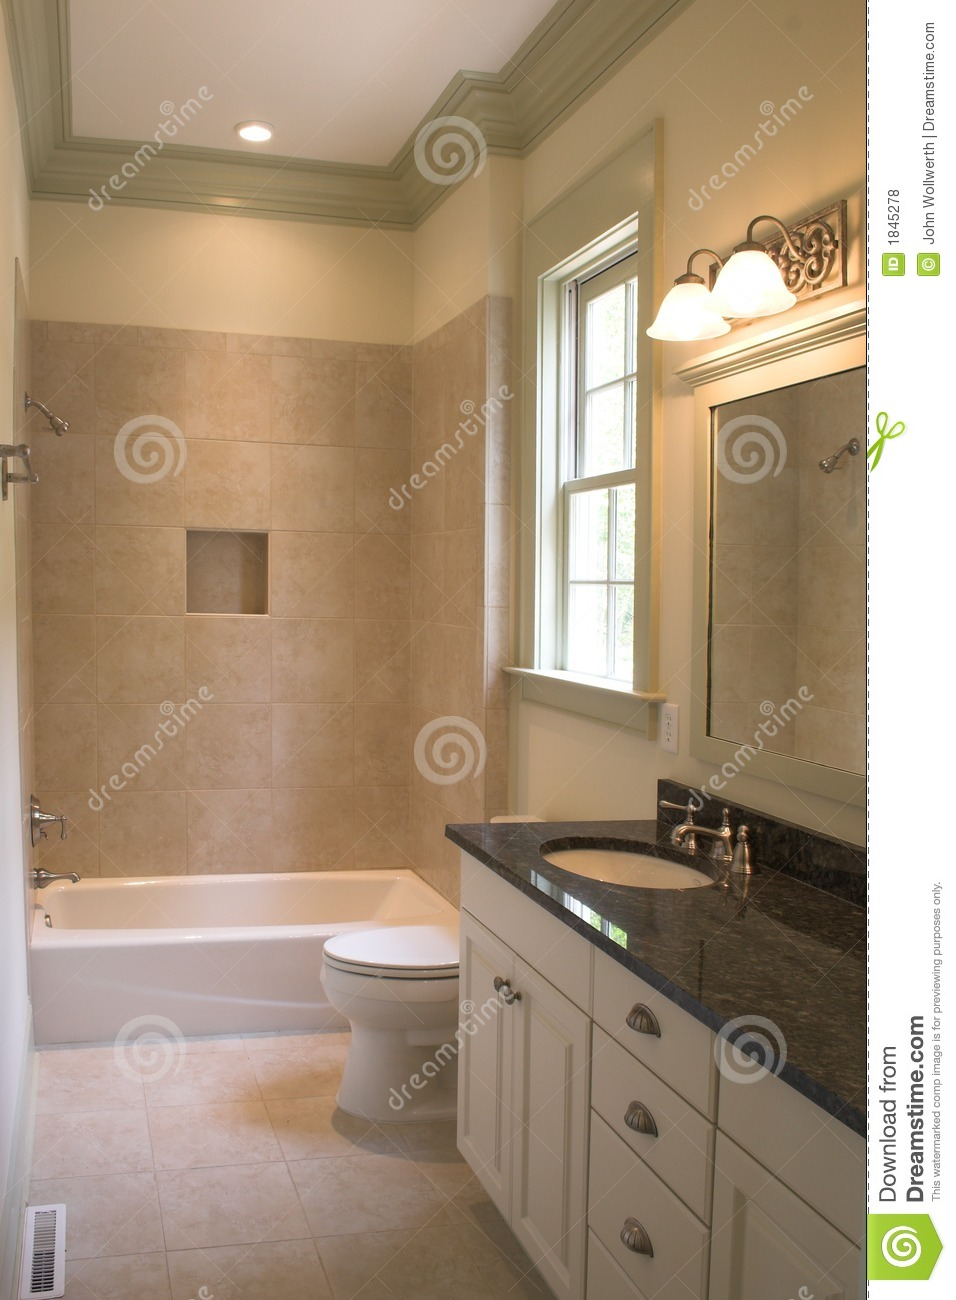 simple bathroom with tile and stone royalty free stock photos image